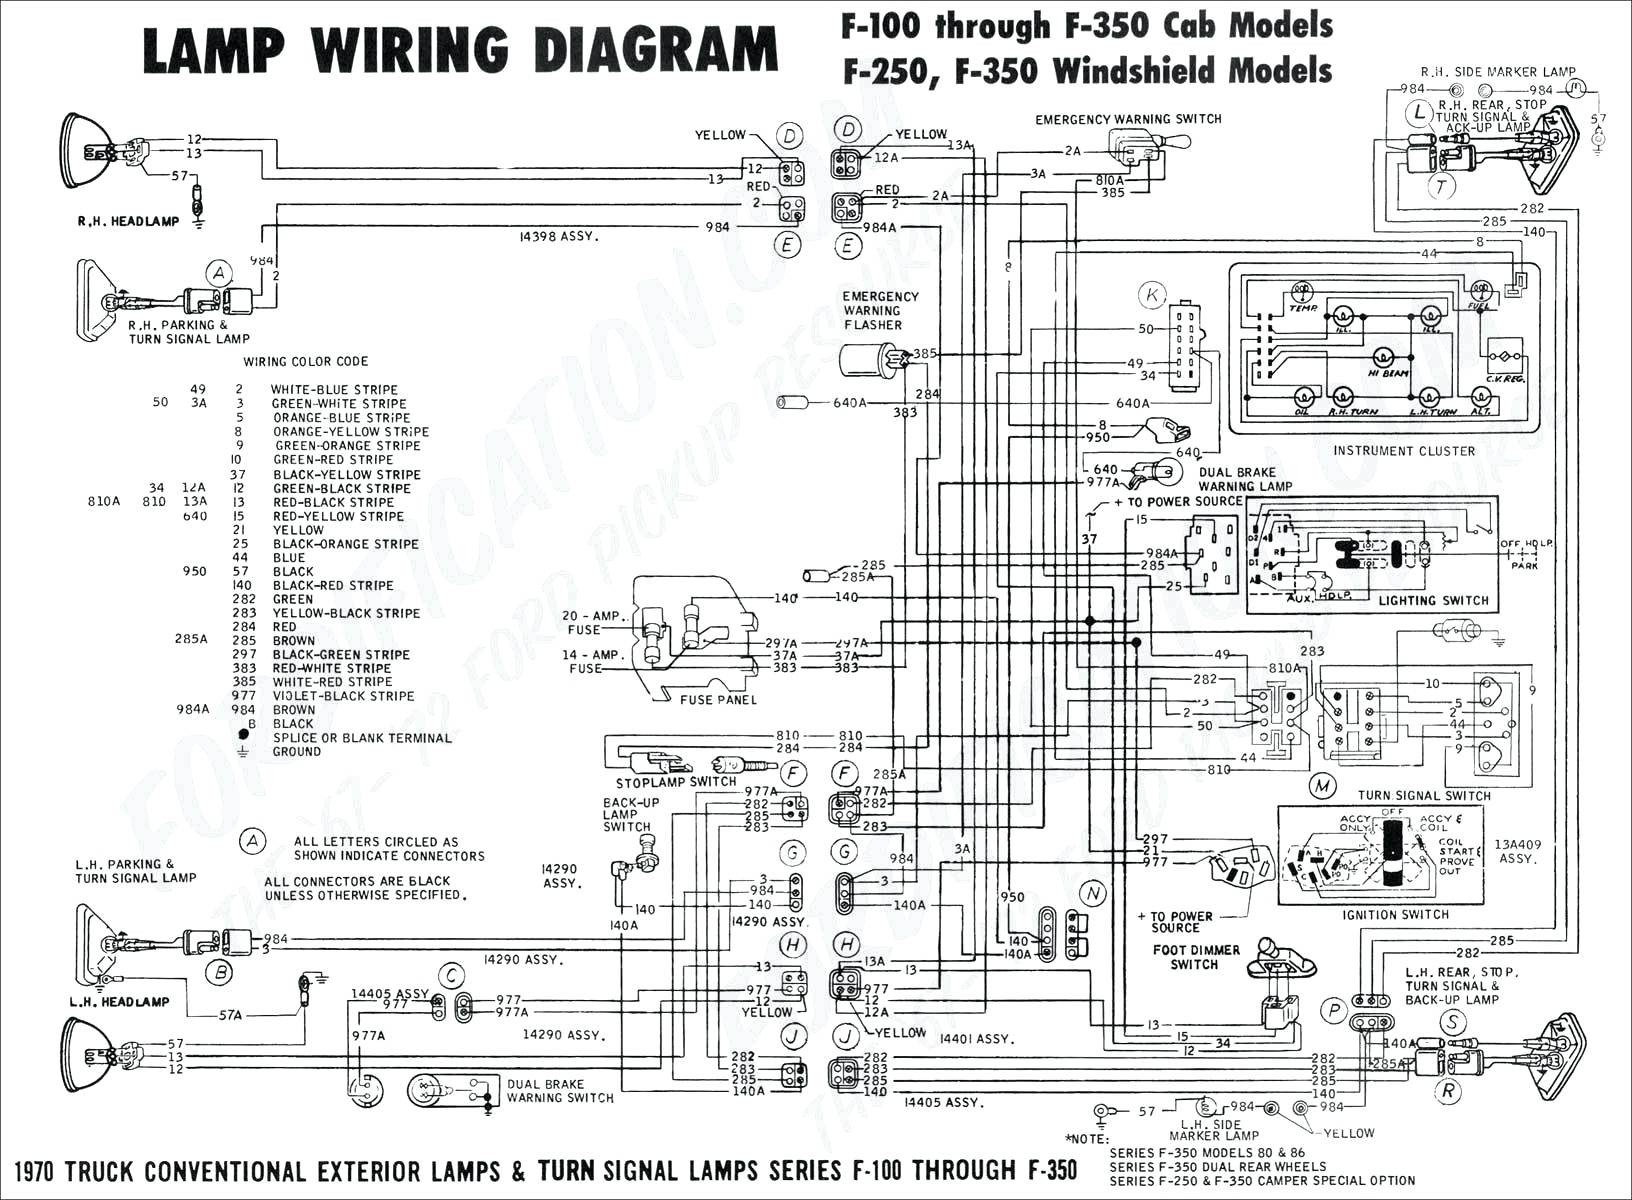 2013 Silverado Wiring Power Schematic - Preview Wiring Diagram on